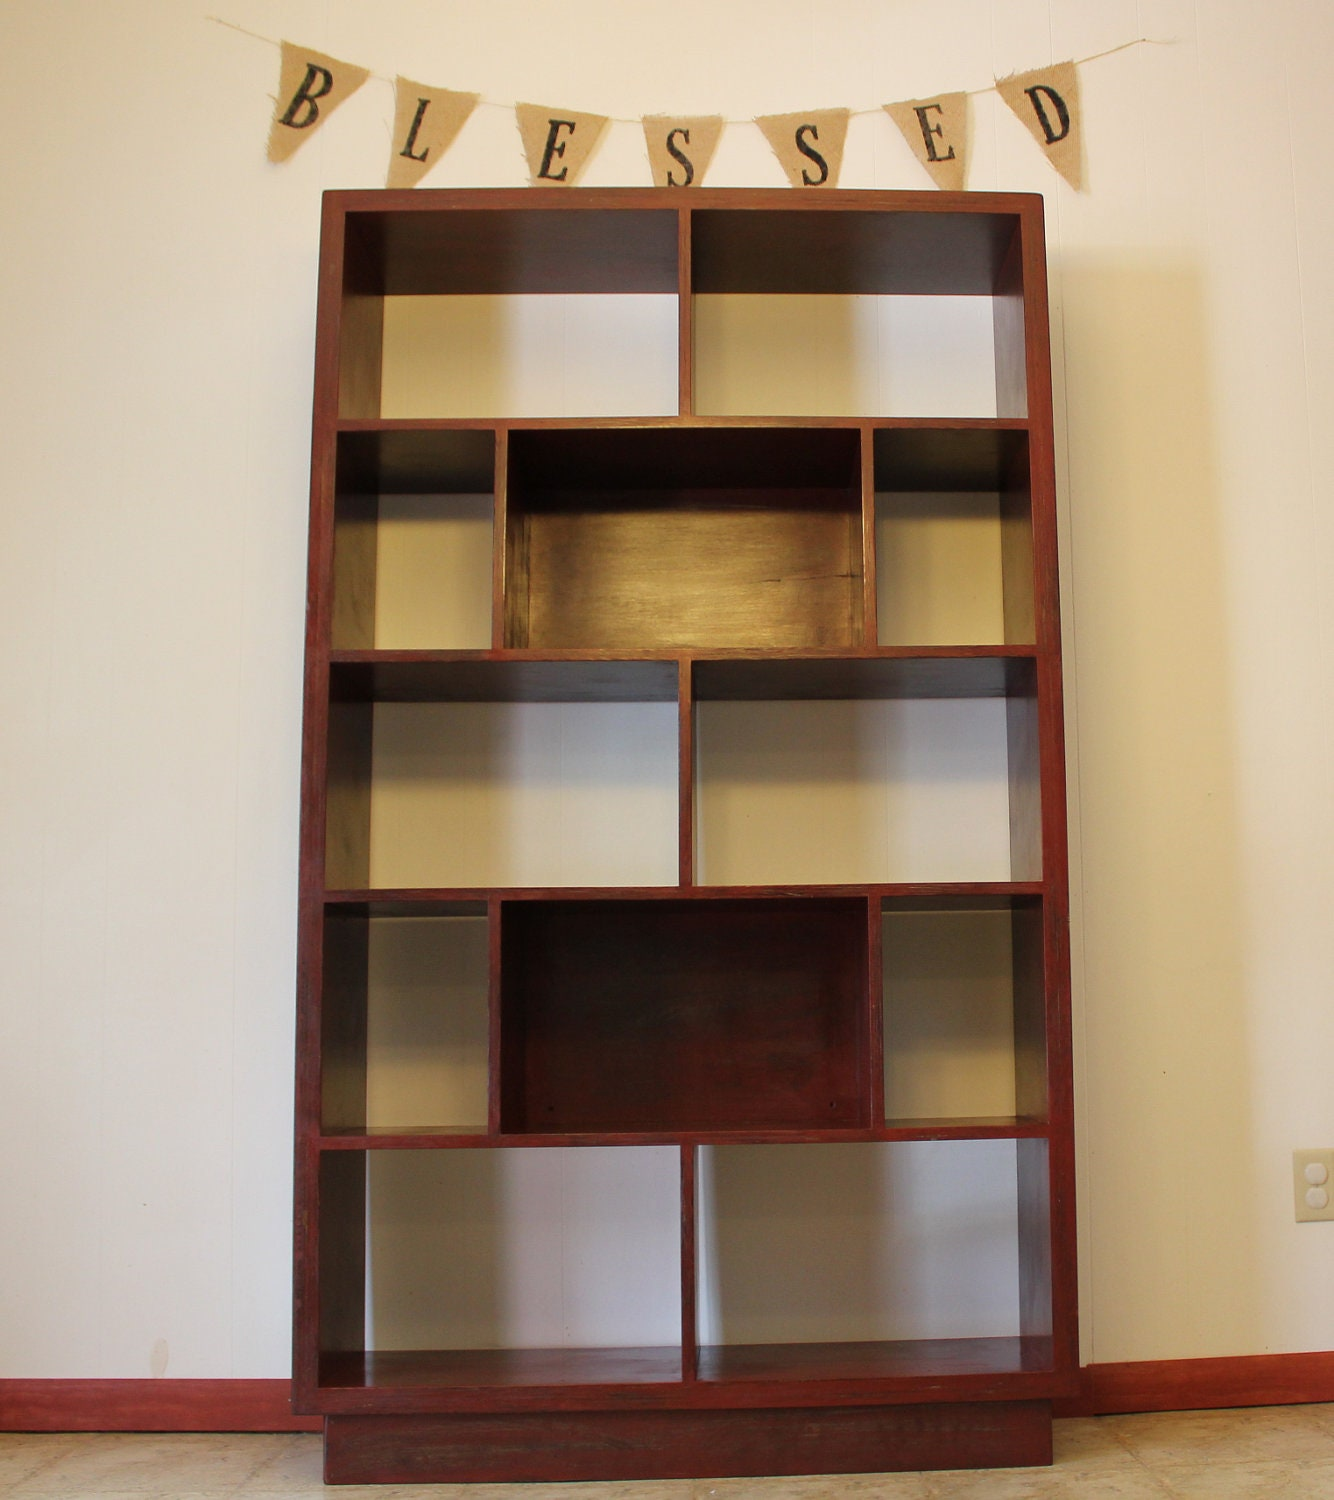 #693C2B Bookcase/Bookshelf Red Distressed Wood By YodersWoodedLot On Etsy with 1334x1500 px of Most Effective Black Bookcase Wood 15001334 wallpaper @ avoidforclosure.info